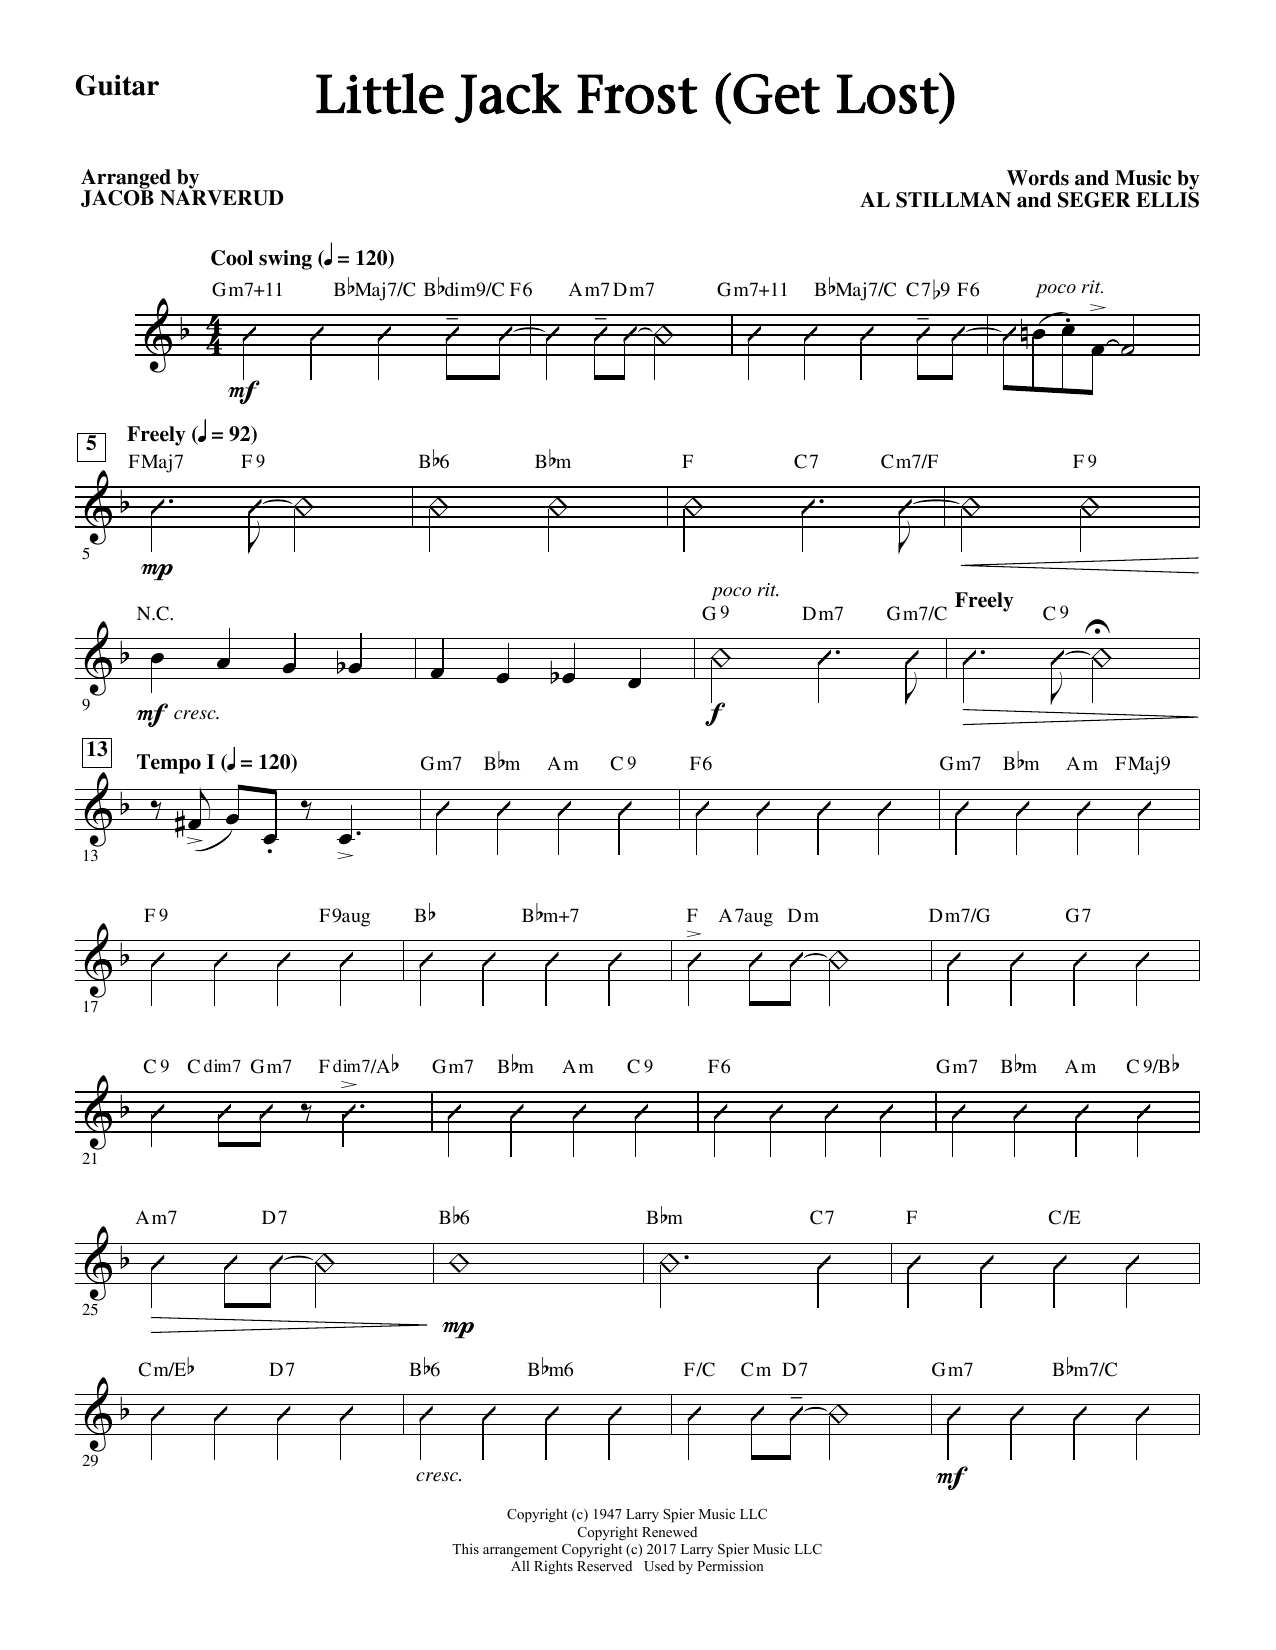 Little Jack Frost (Get Lost) - Guitar Sheet Music